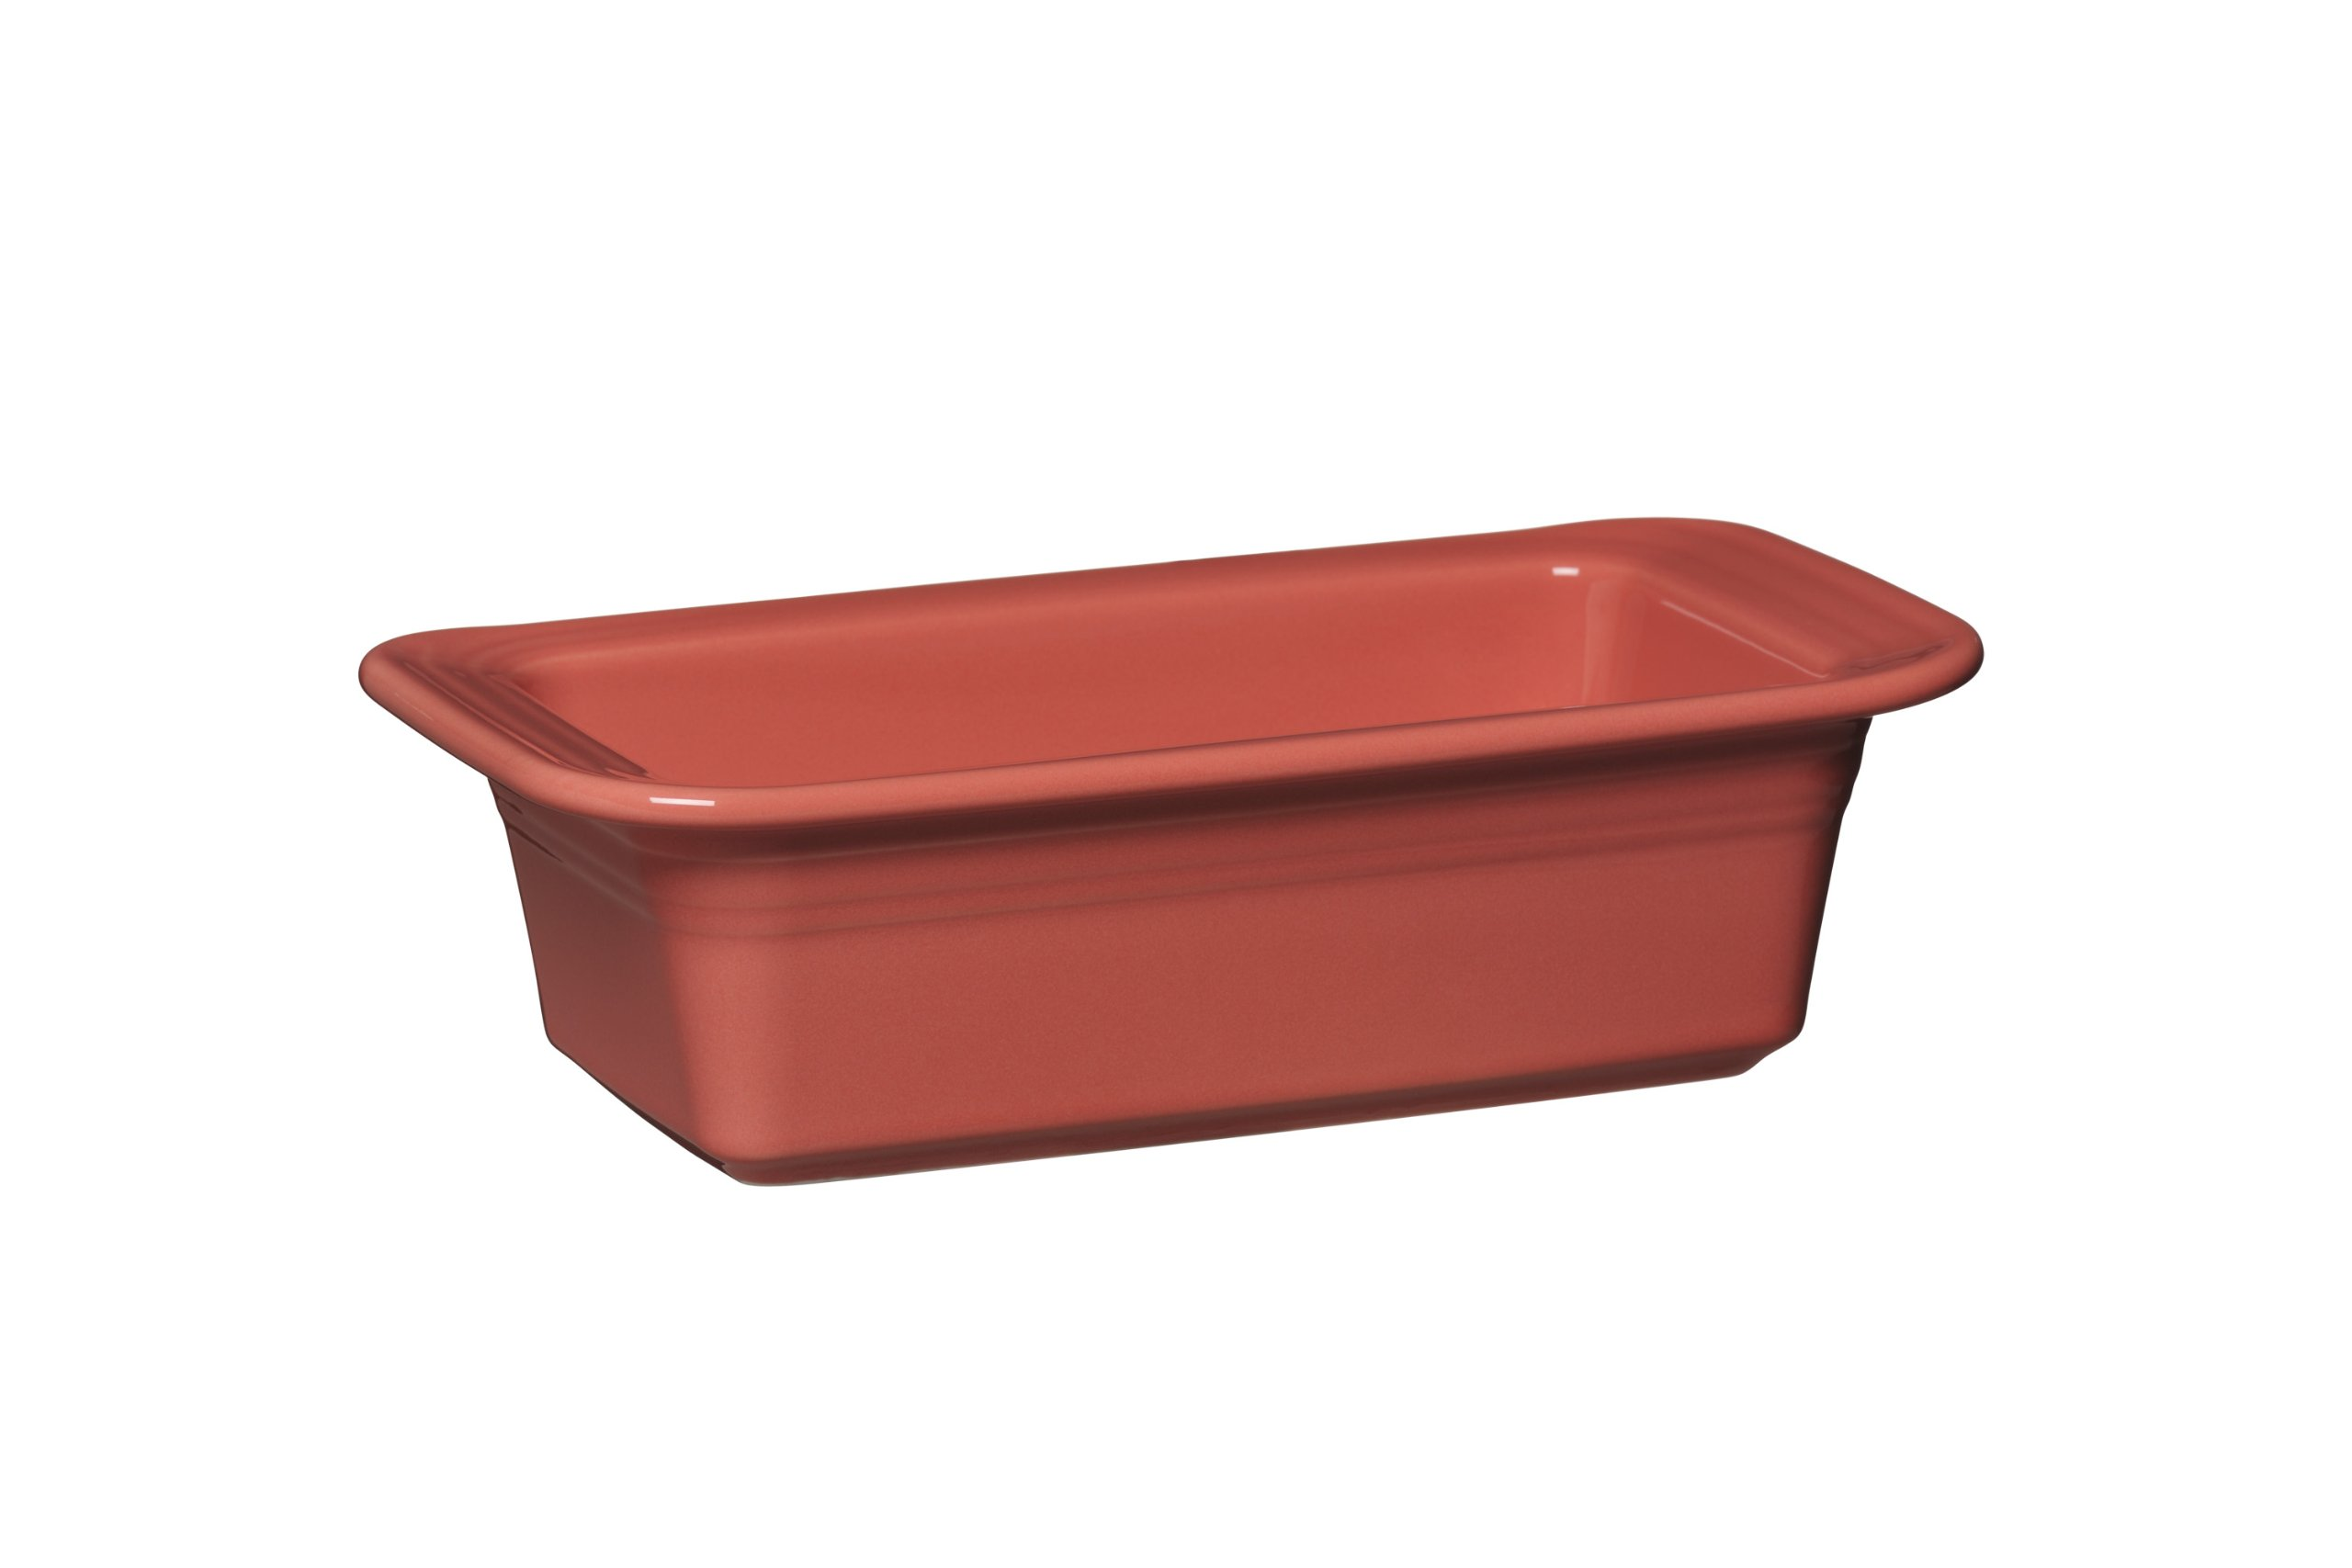 Fiesta 813-335 Loaf Pan, 5-3/4-Inch by 10-3/4-Inch, Flamingo